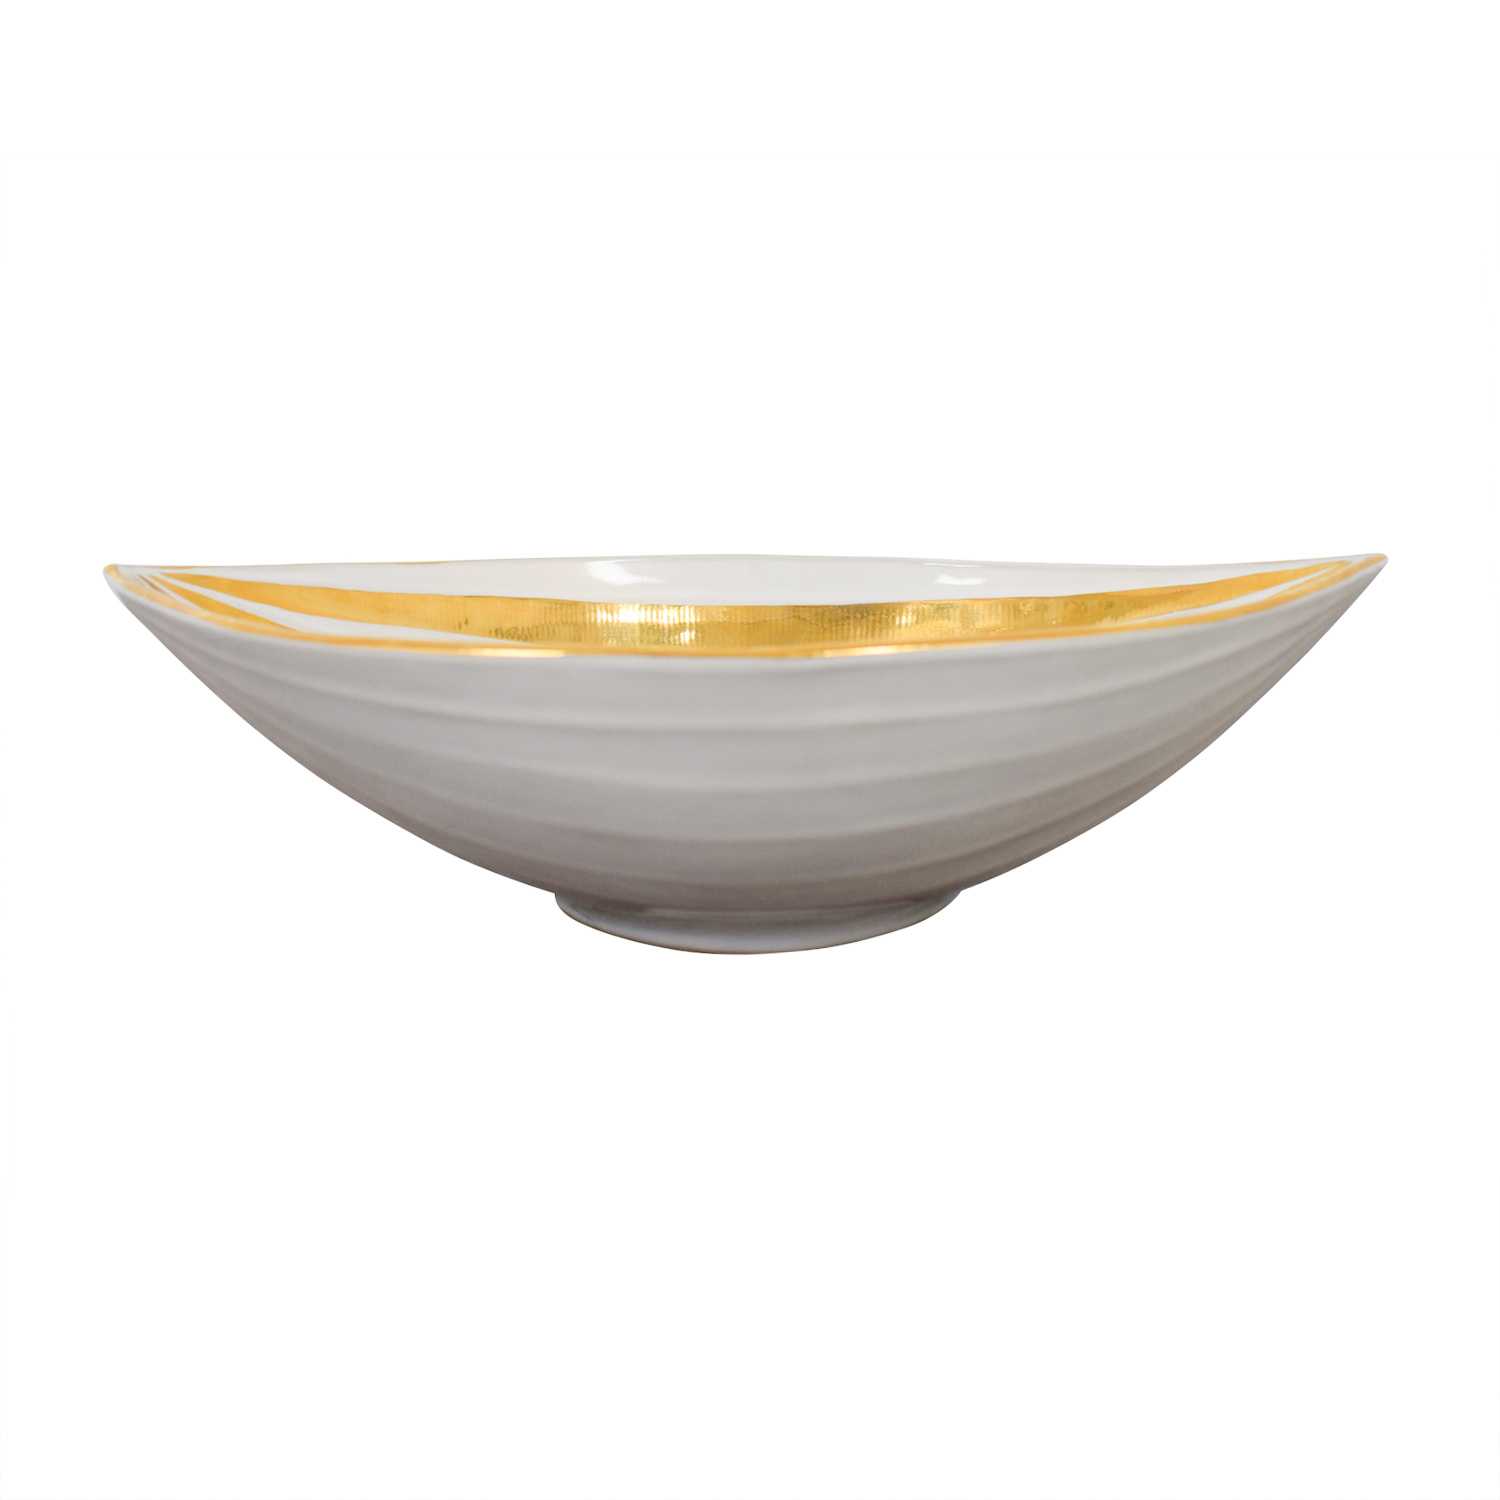 Jonathan Adler Jonathan Adler Gold and White Glazed Ceramic Bowl Decor